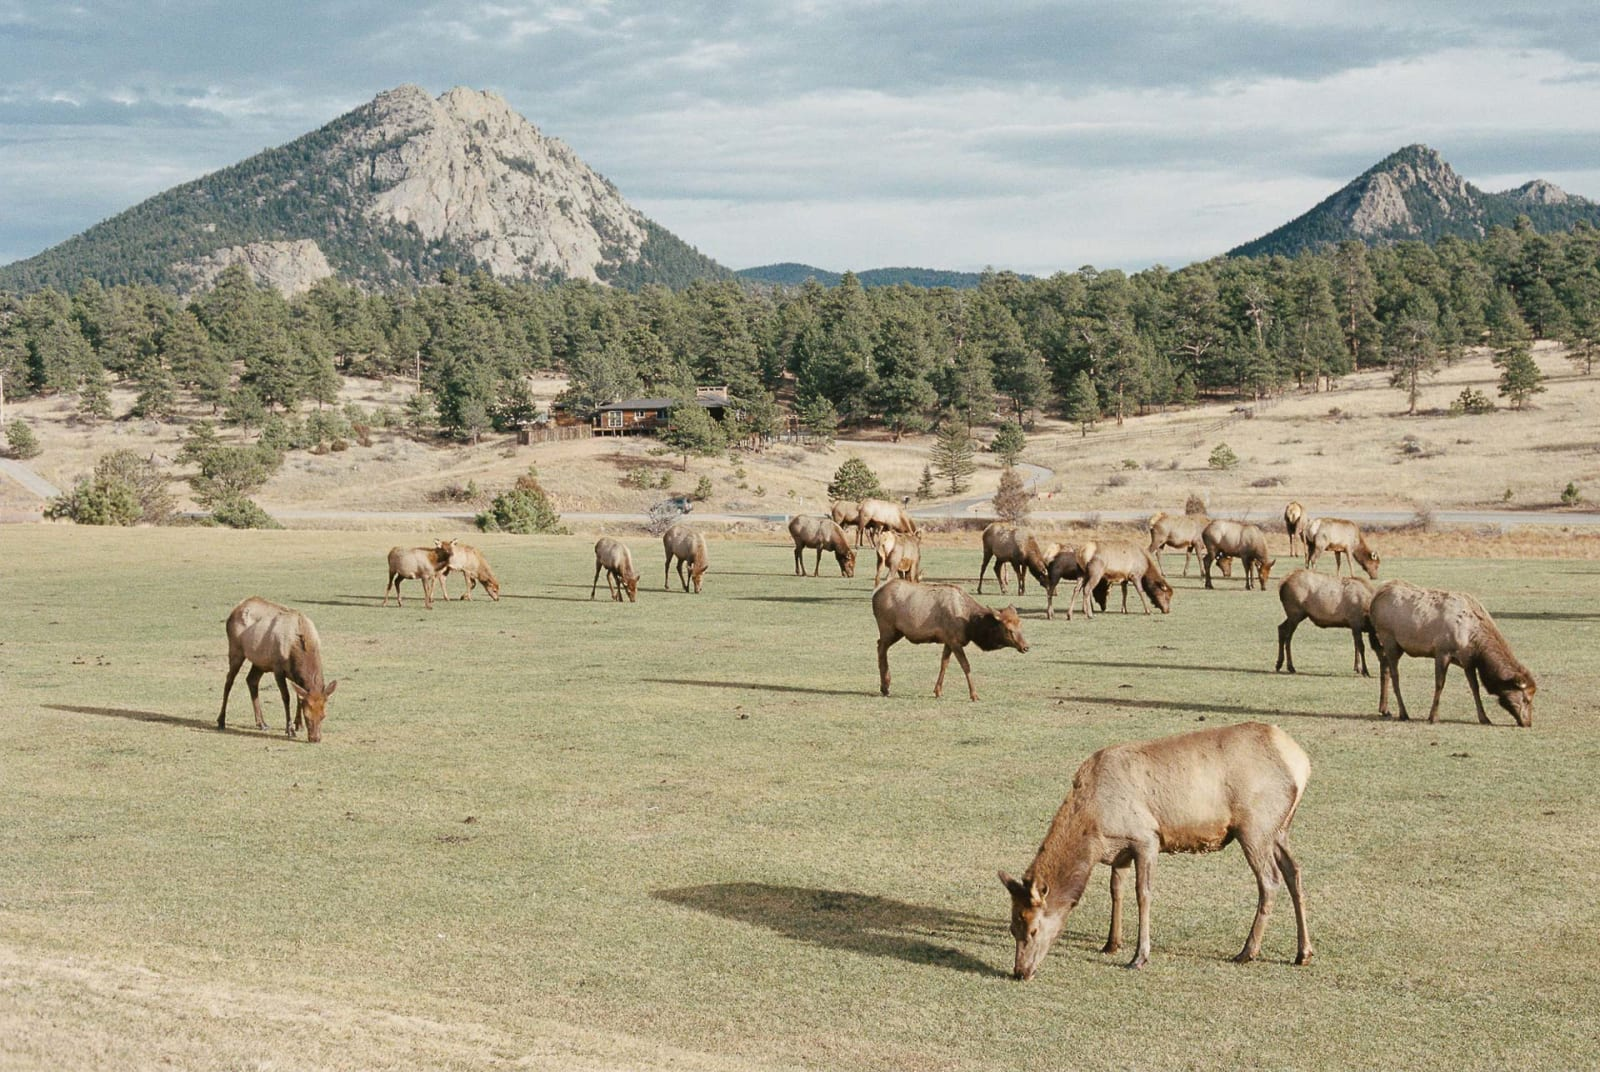 A herd of elks at Estes Park, just outside of Rocky Mountain National Park. Thanksgiving, 2017.